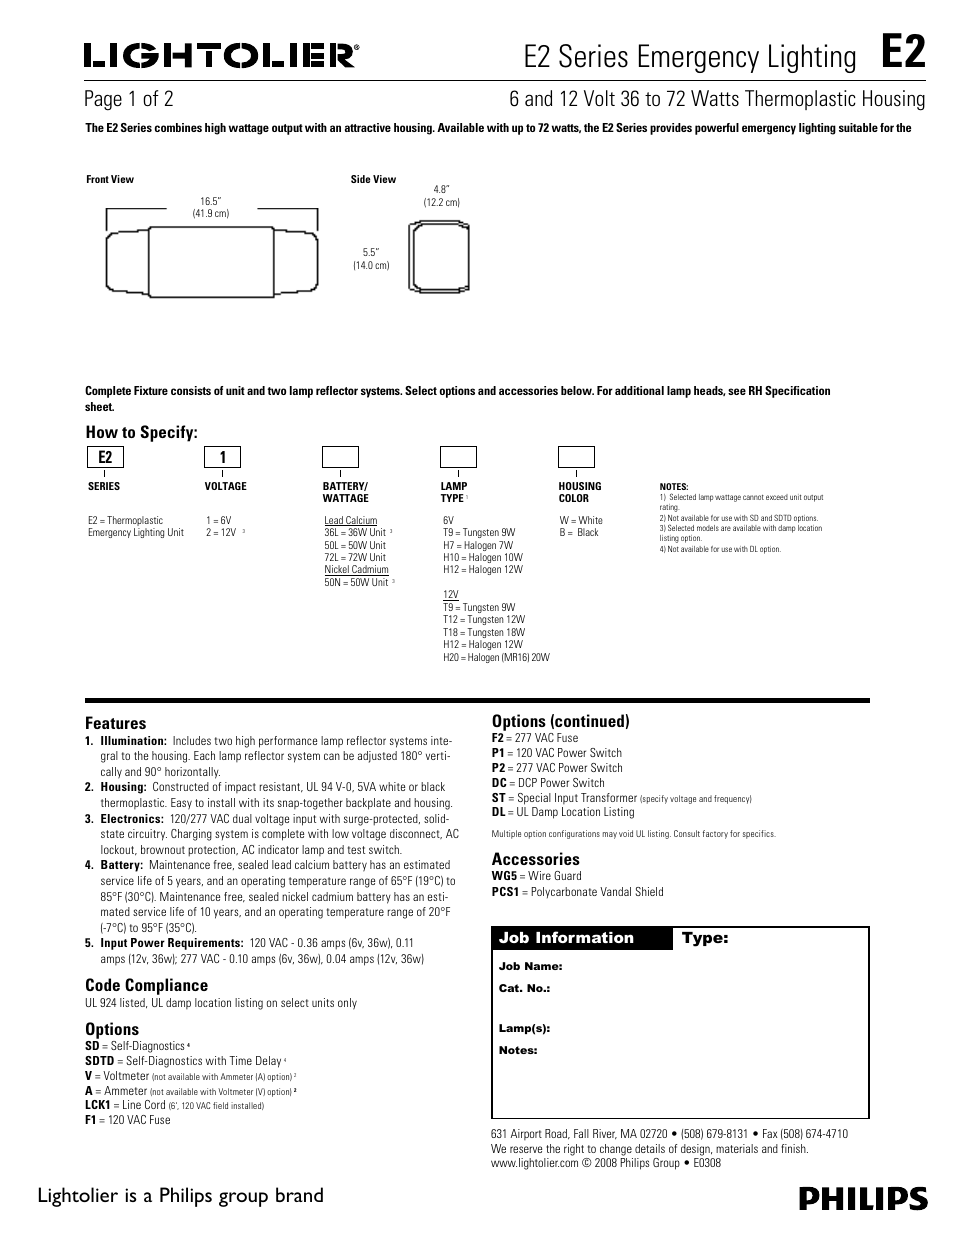 Lightolier Emergency Lighting E2 Series User Manual 2 Pages